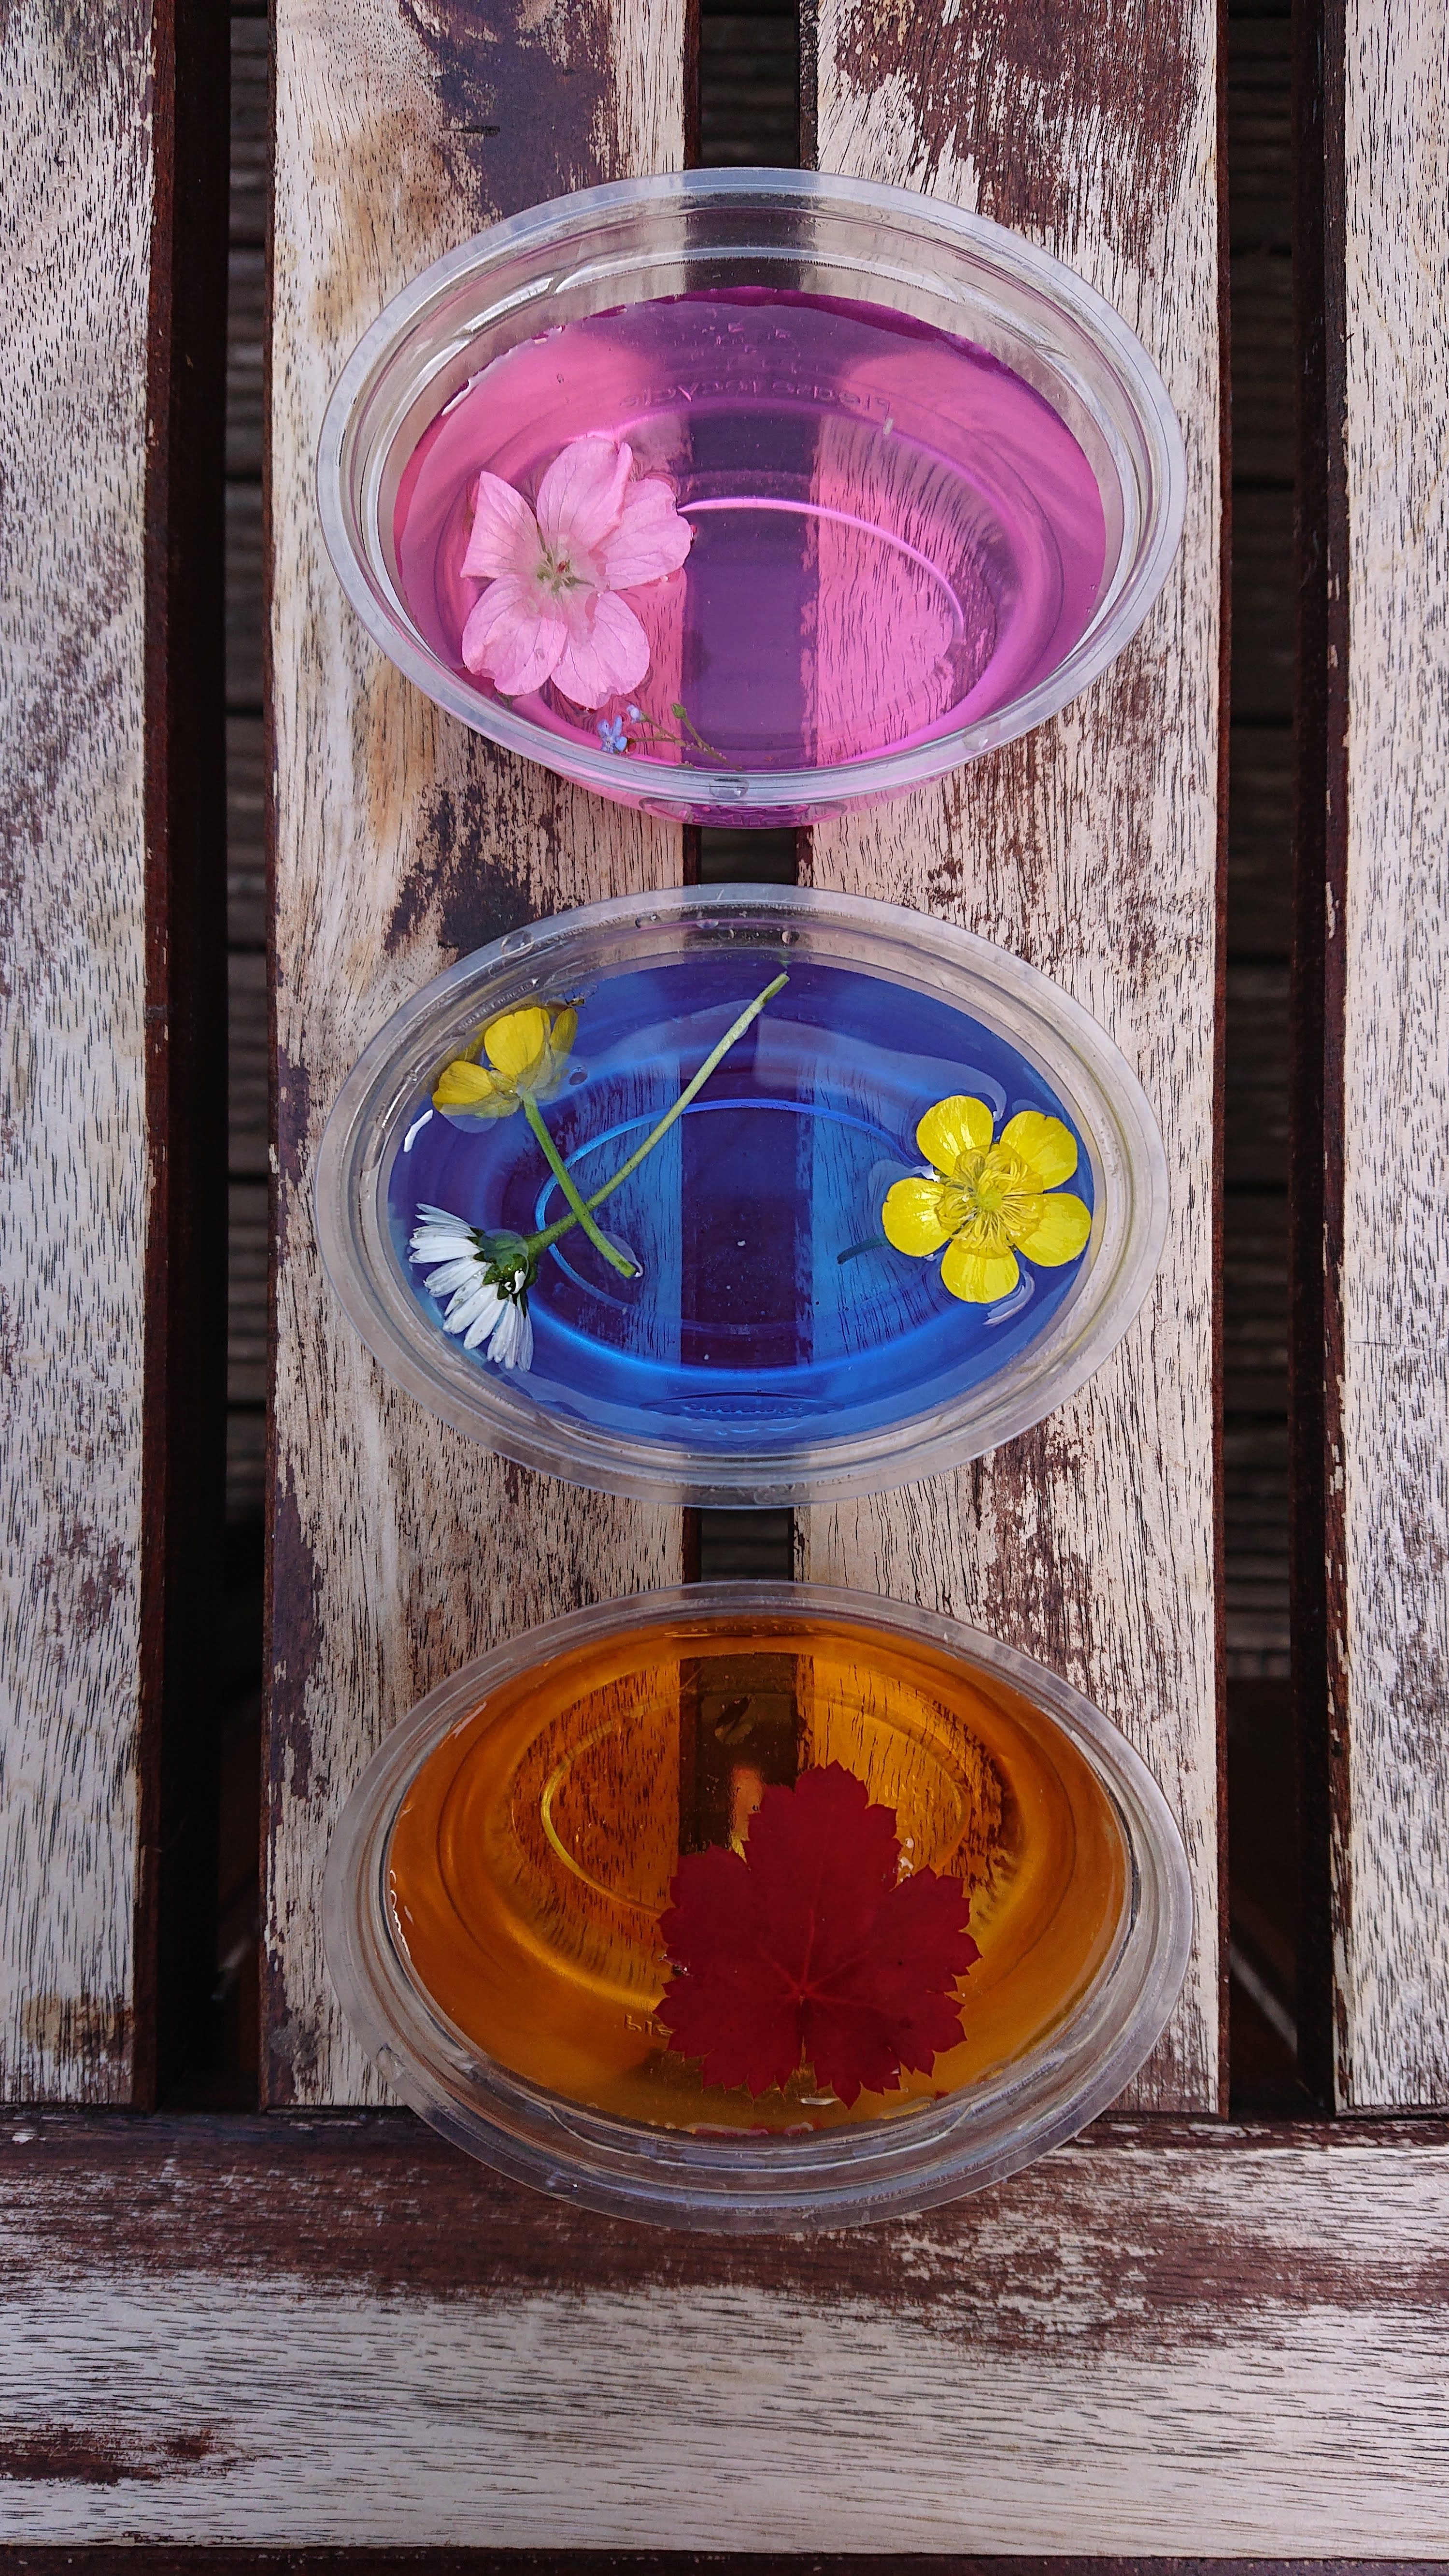 Easy summer crafts for kids. 3 yoghurt pots filled with coloured water and flowers ready for freezing